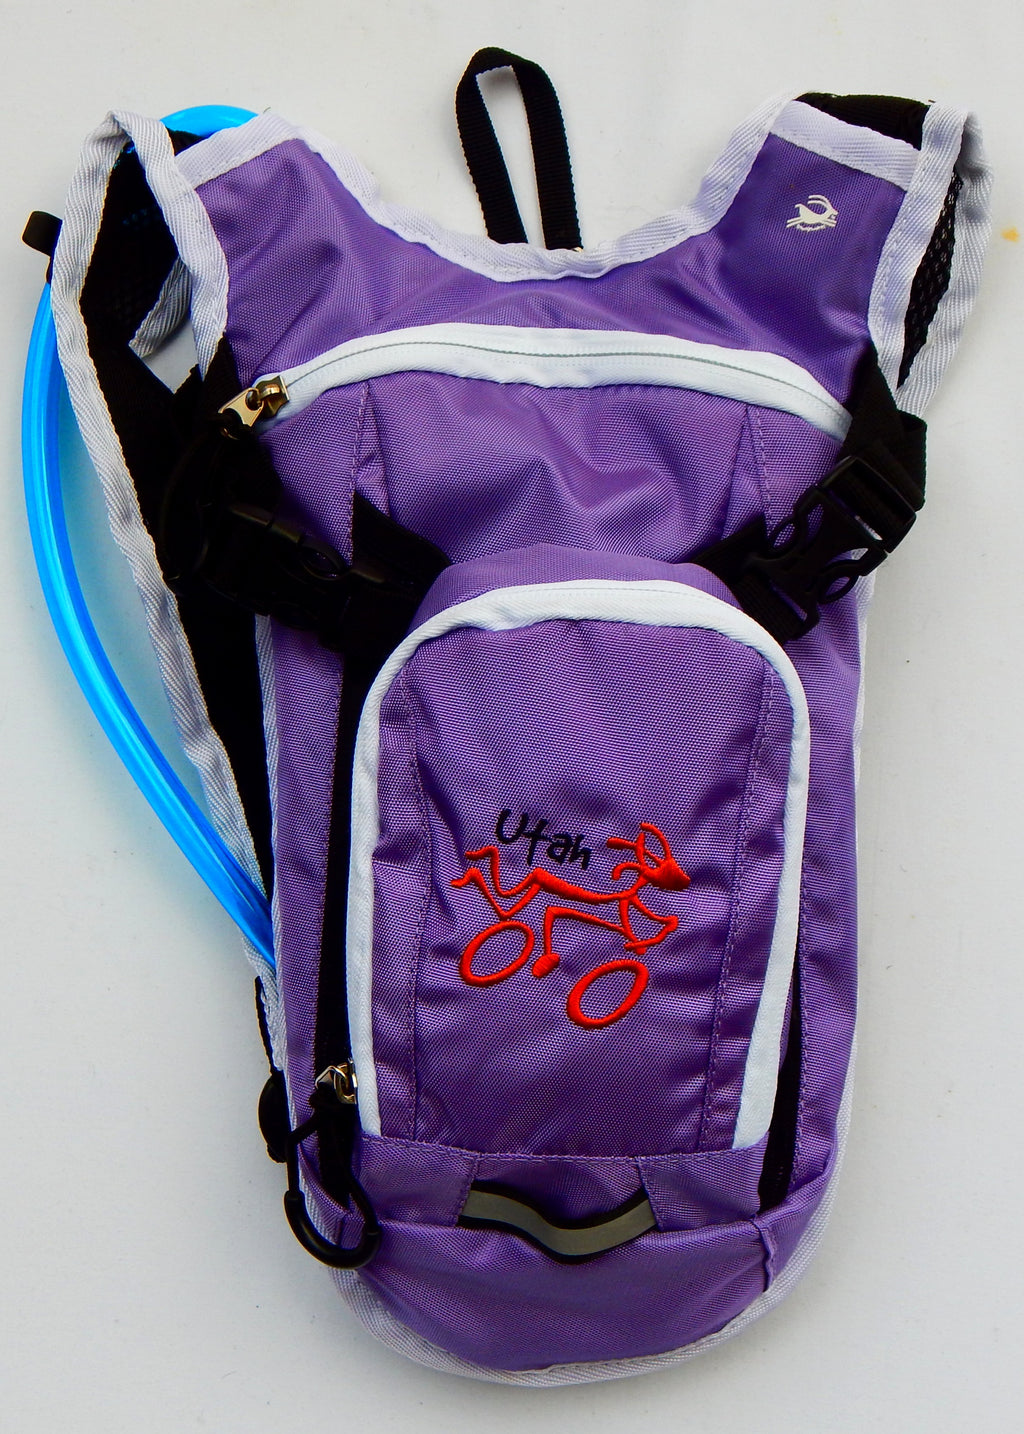 Youth Hydration Pack - Lilac / Rust  UTAH Biker